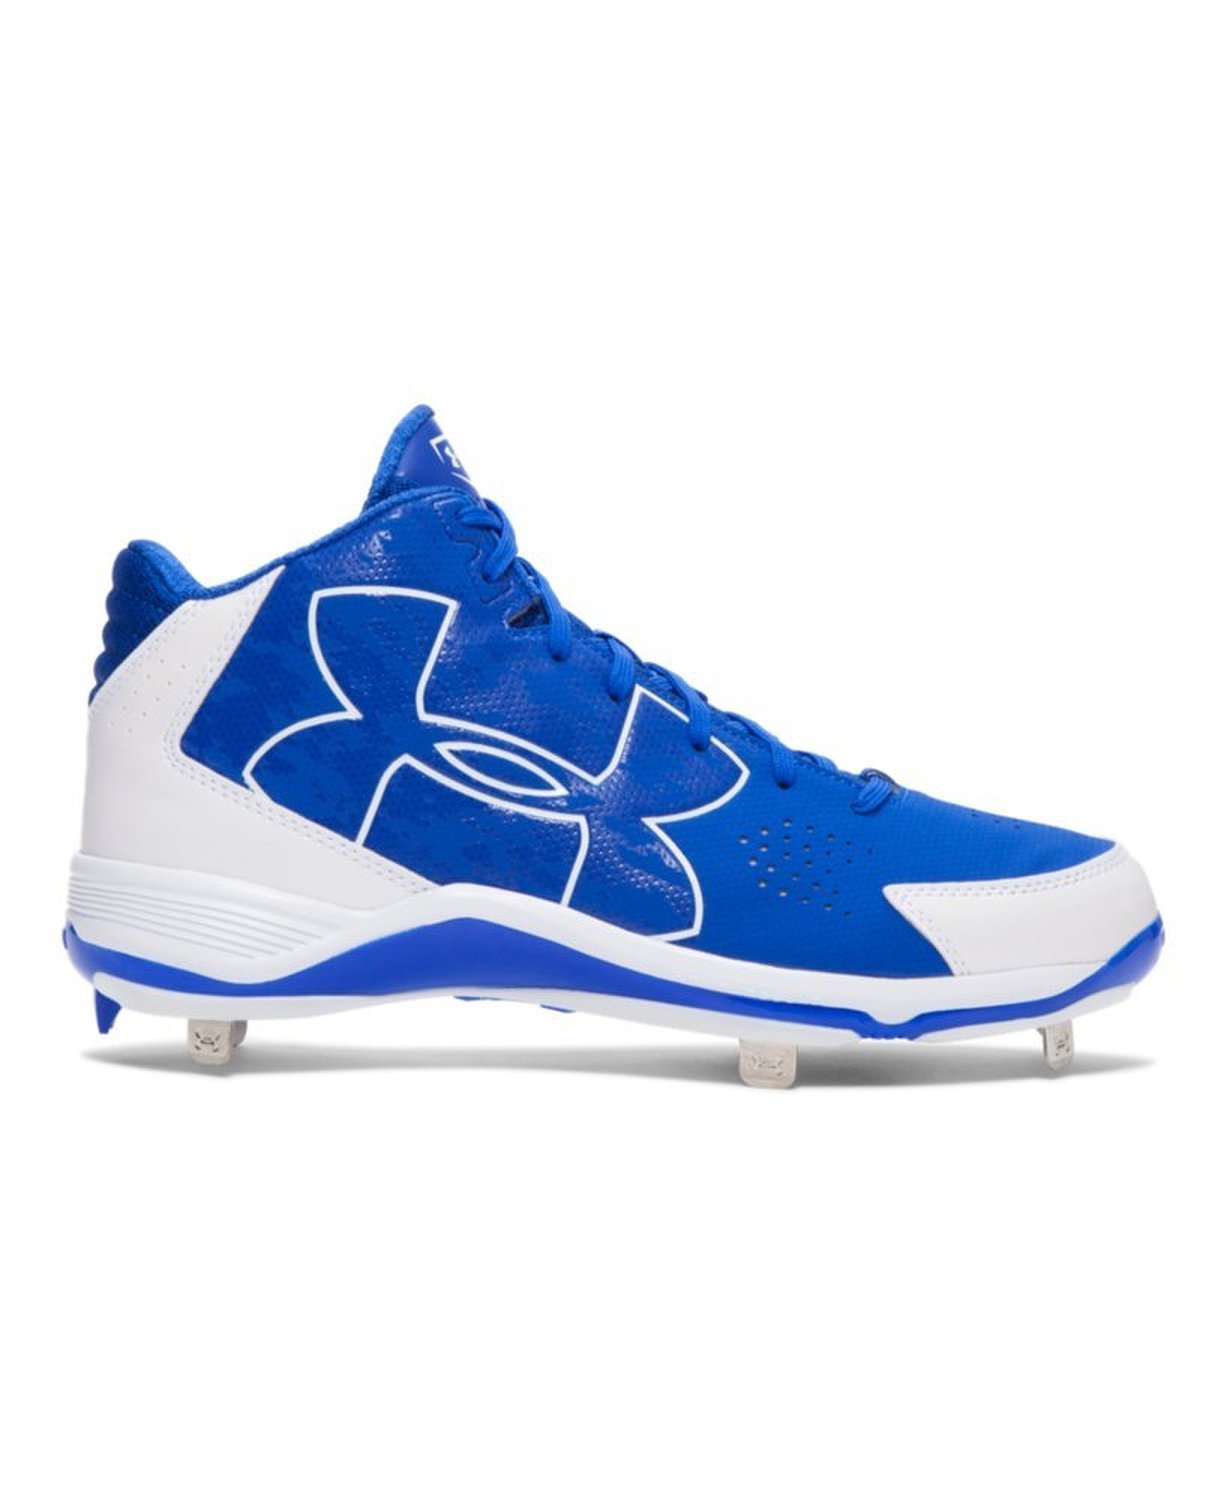 Under Armour メンズ B00Z80M4XI 7.5 D(M) US|Team Royal/ White Team Royal/ White 7.5 D(M) US